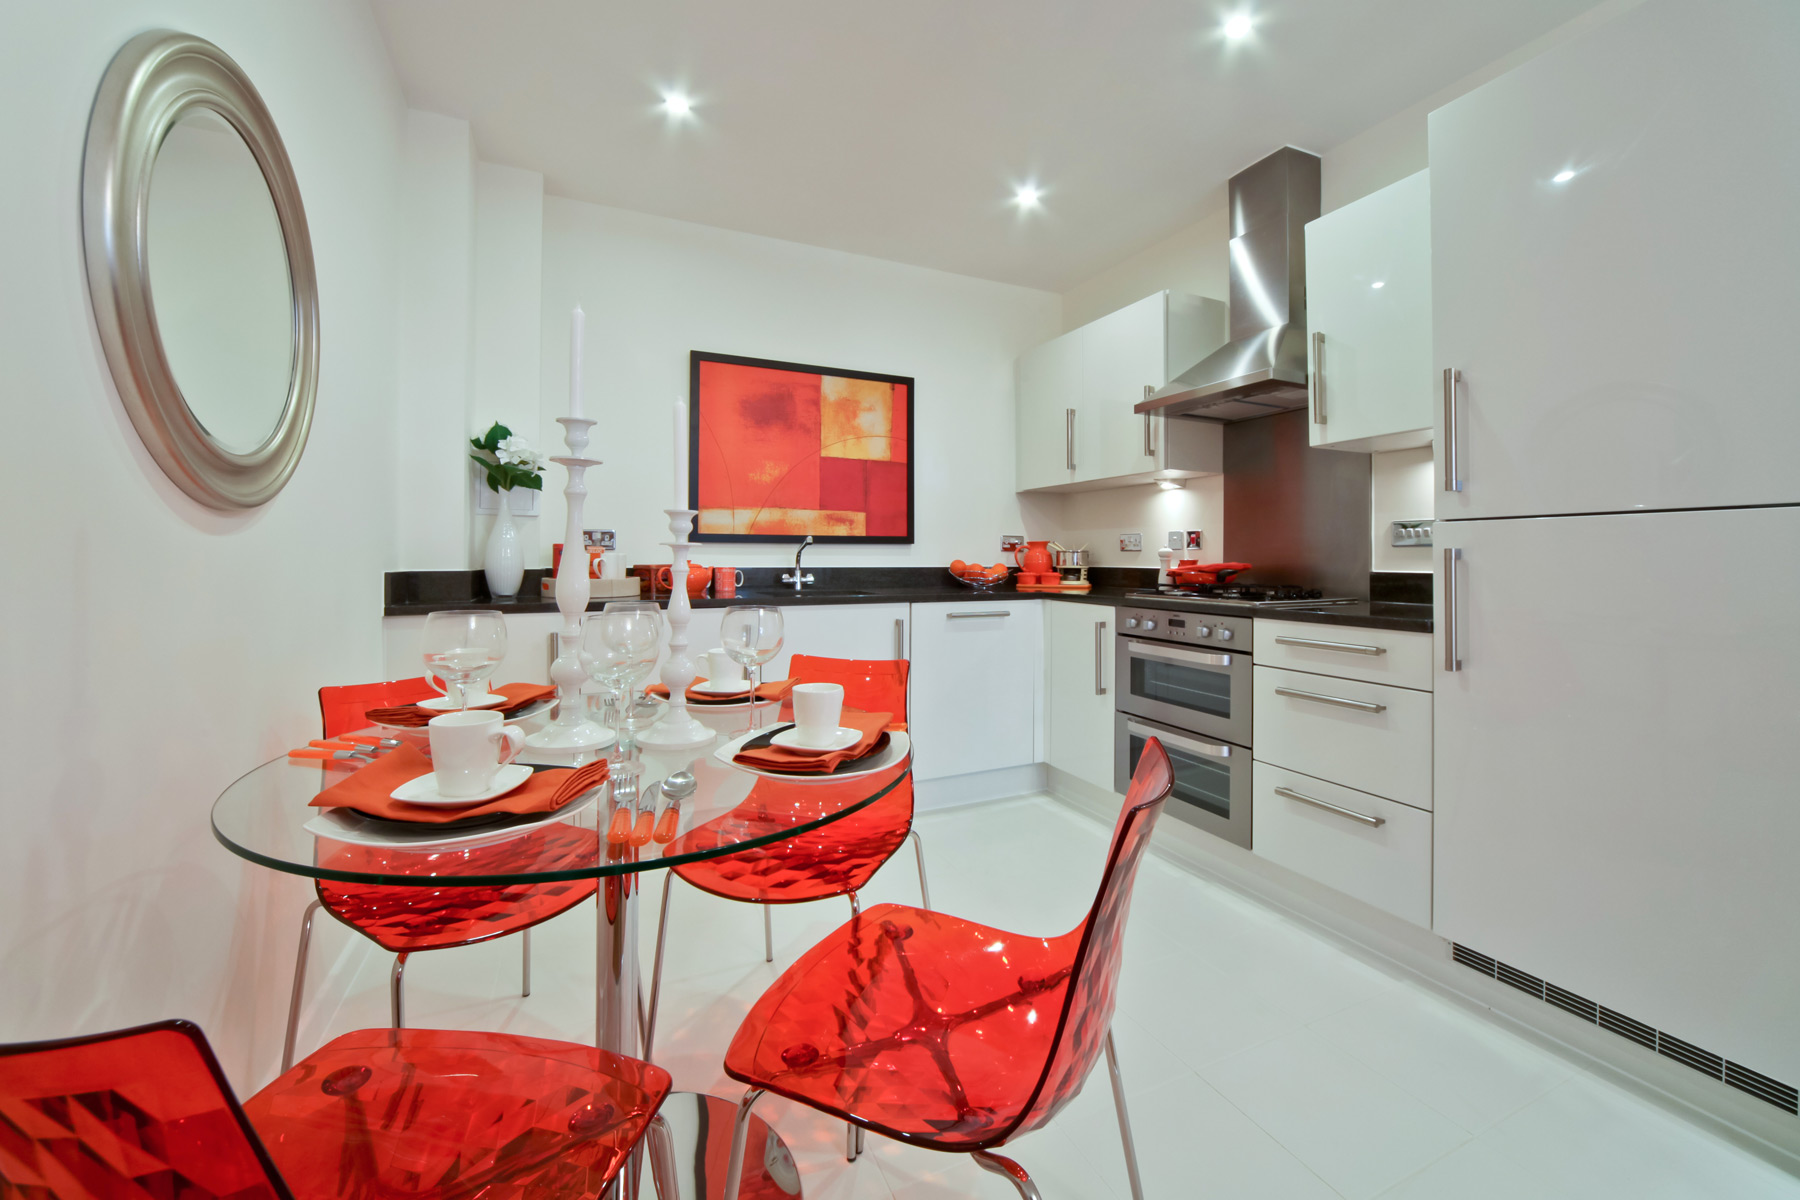 A typical Taylor Wimpey apartment kitchen.